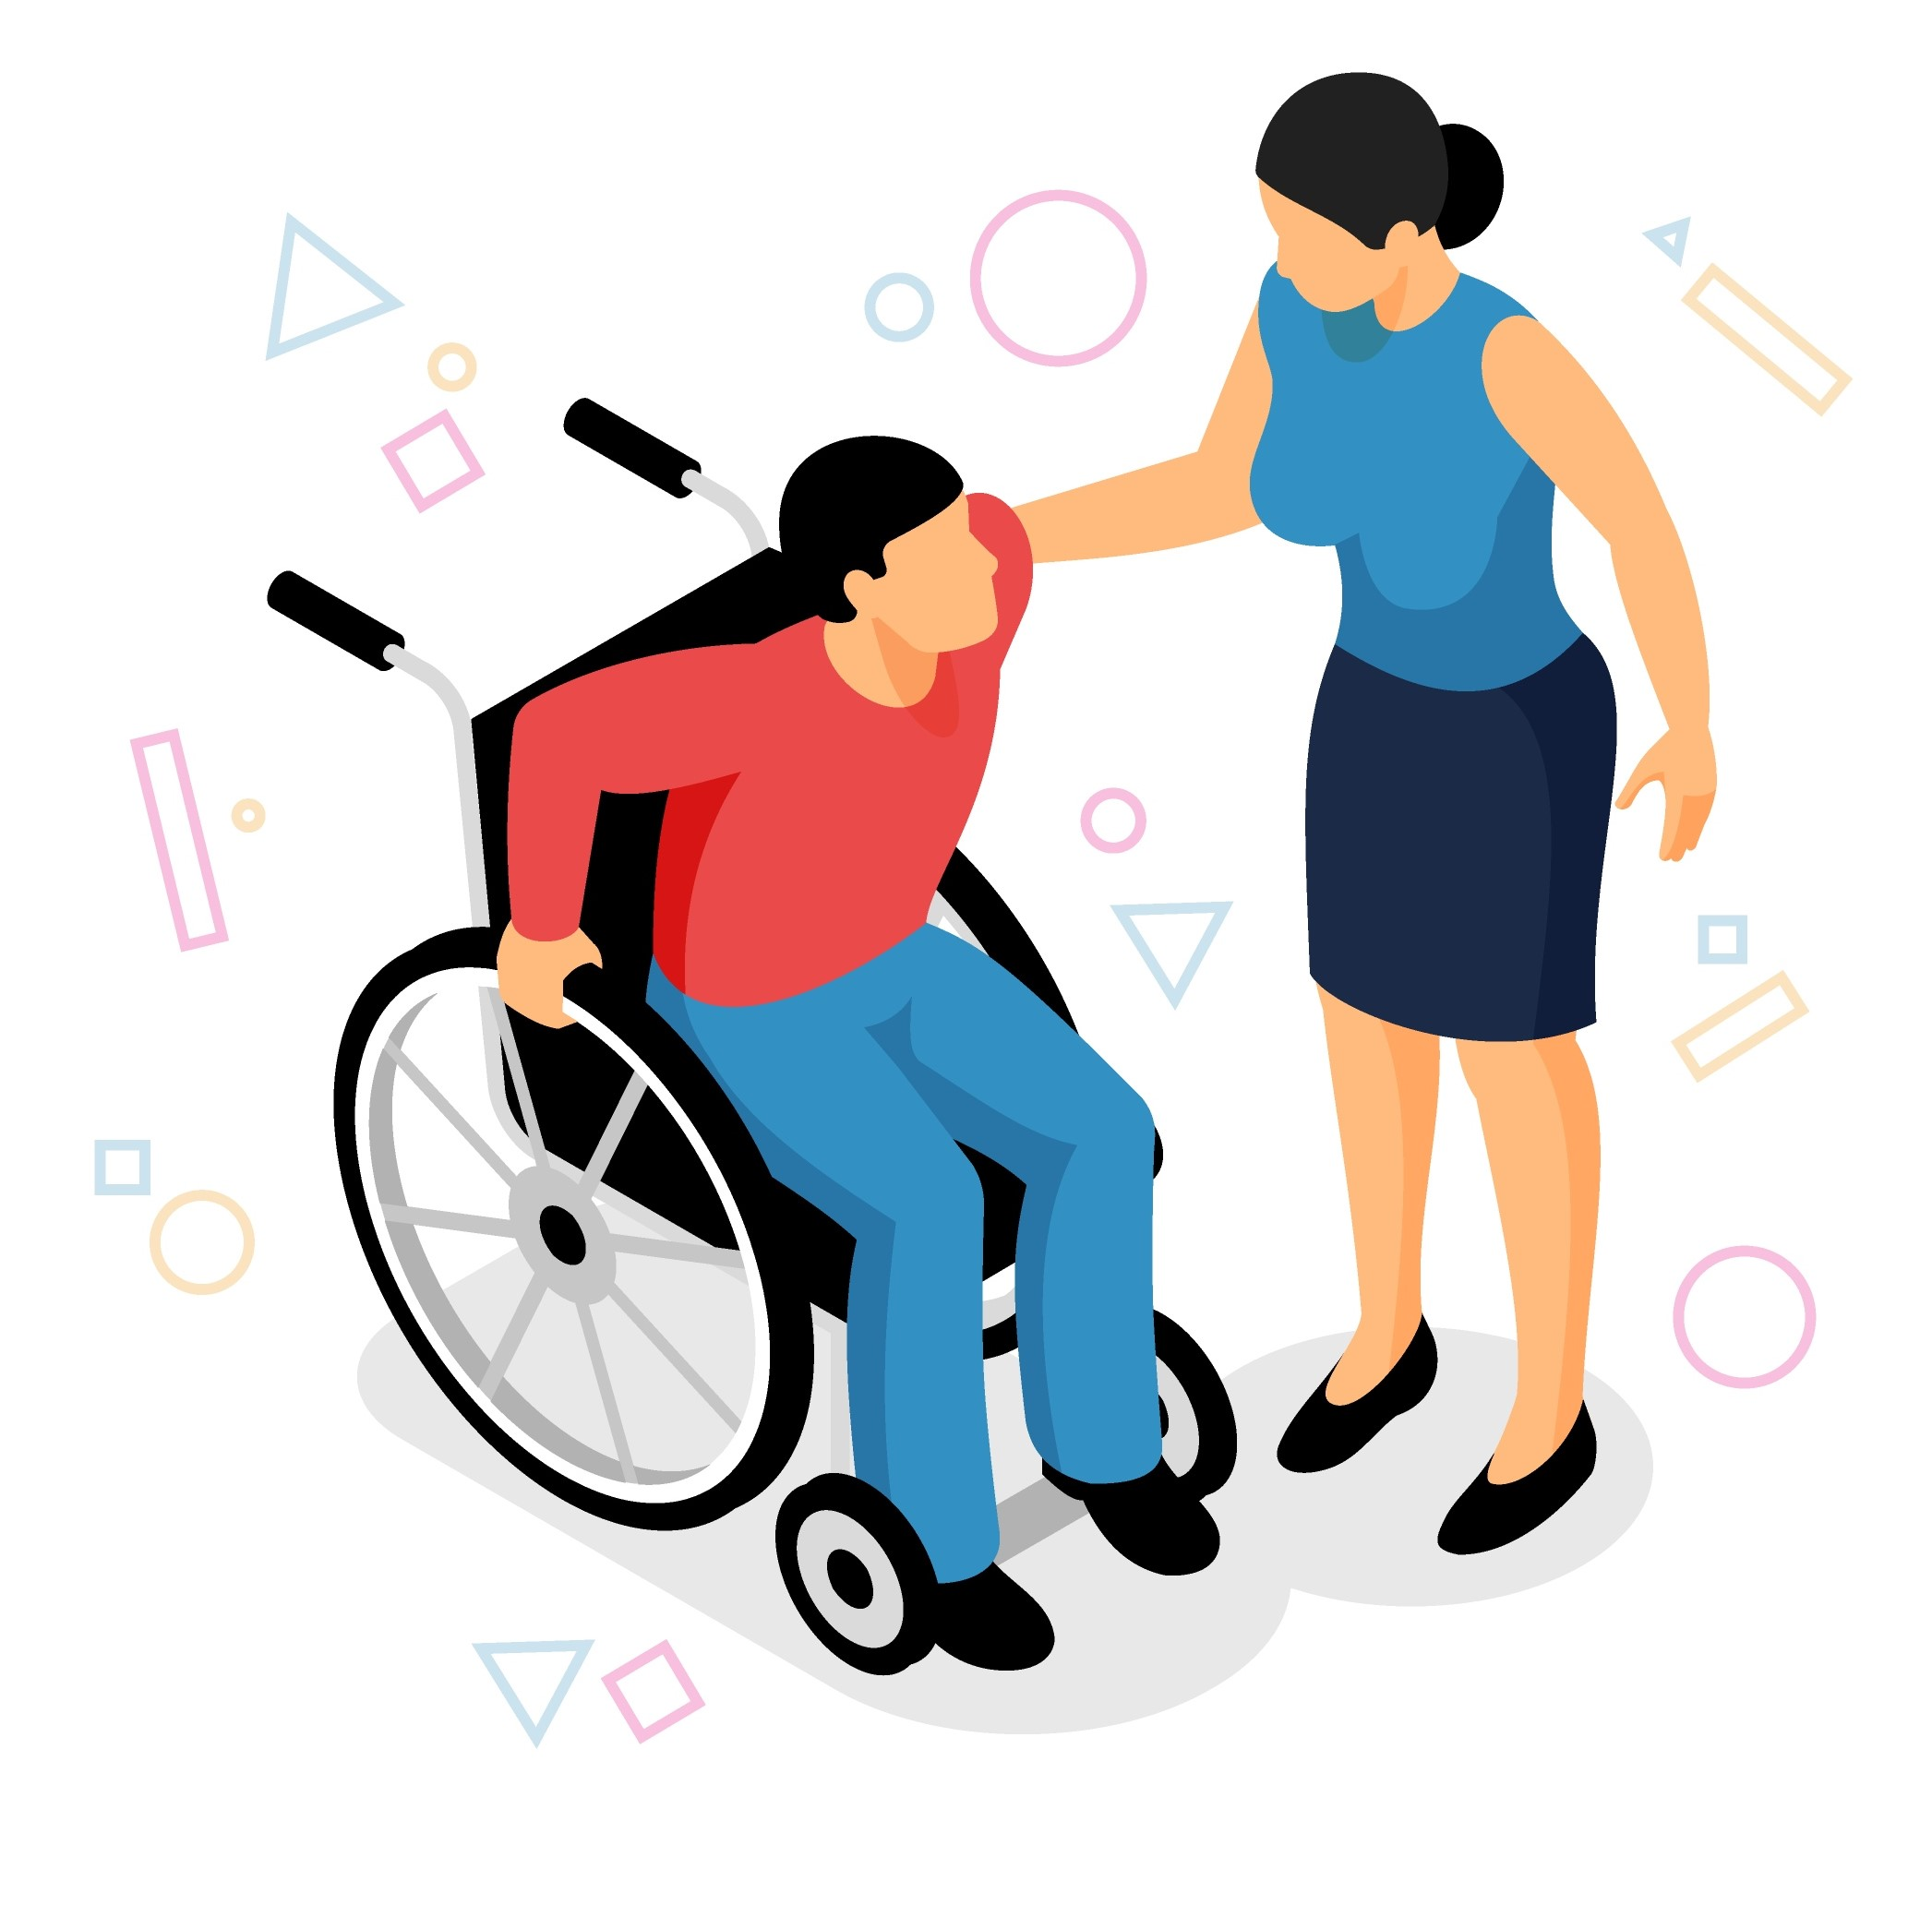 personne en situation de handicap illustration